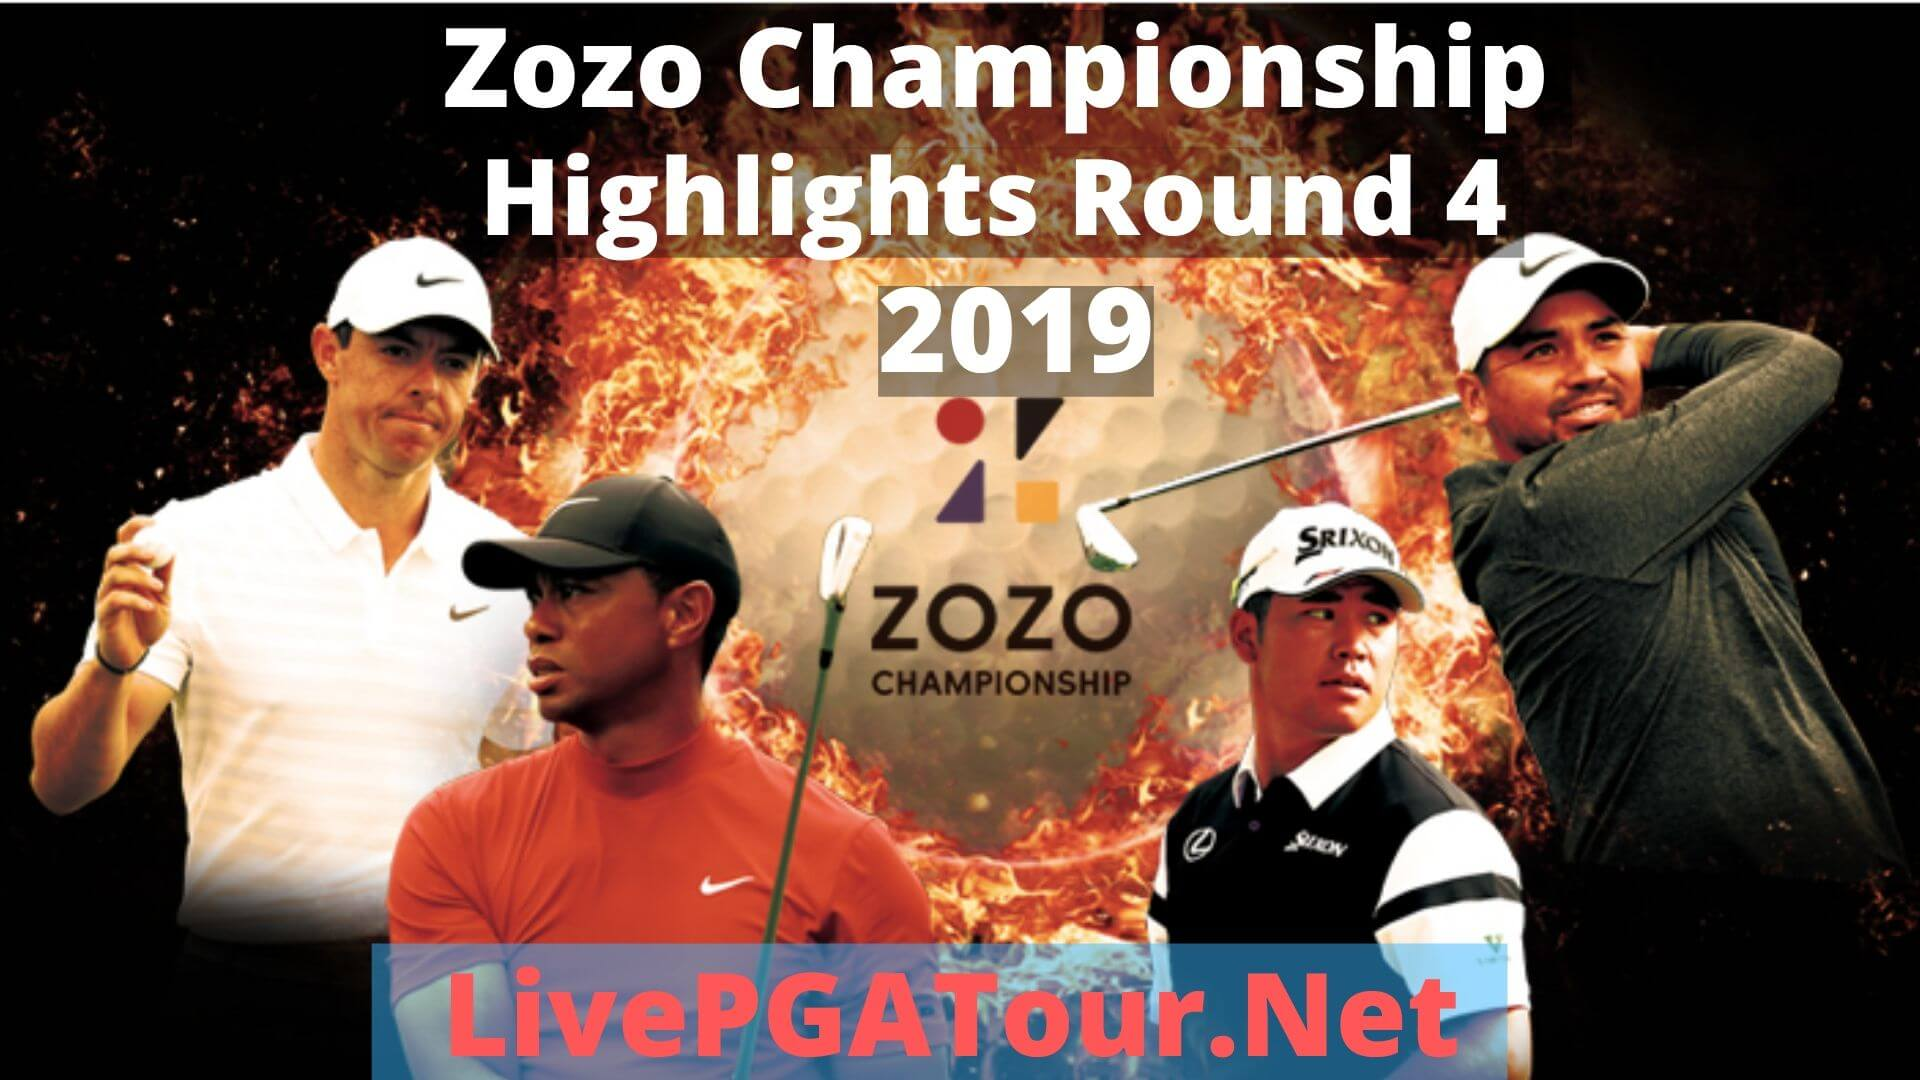 Zozo Championship Highlights 2019 Round 4